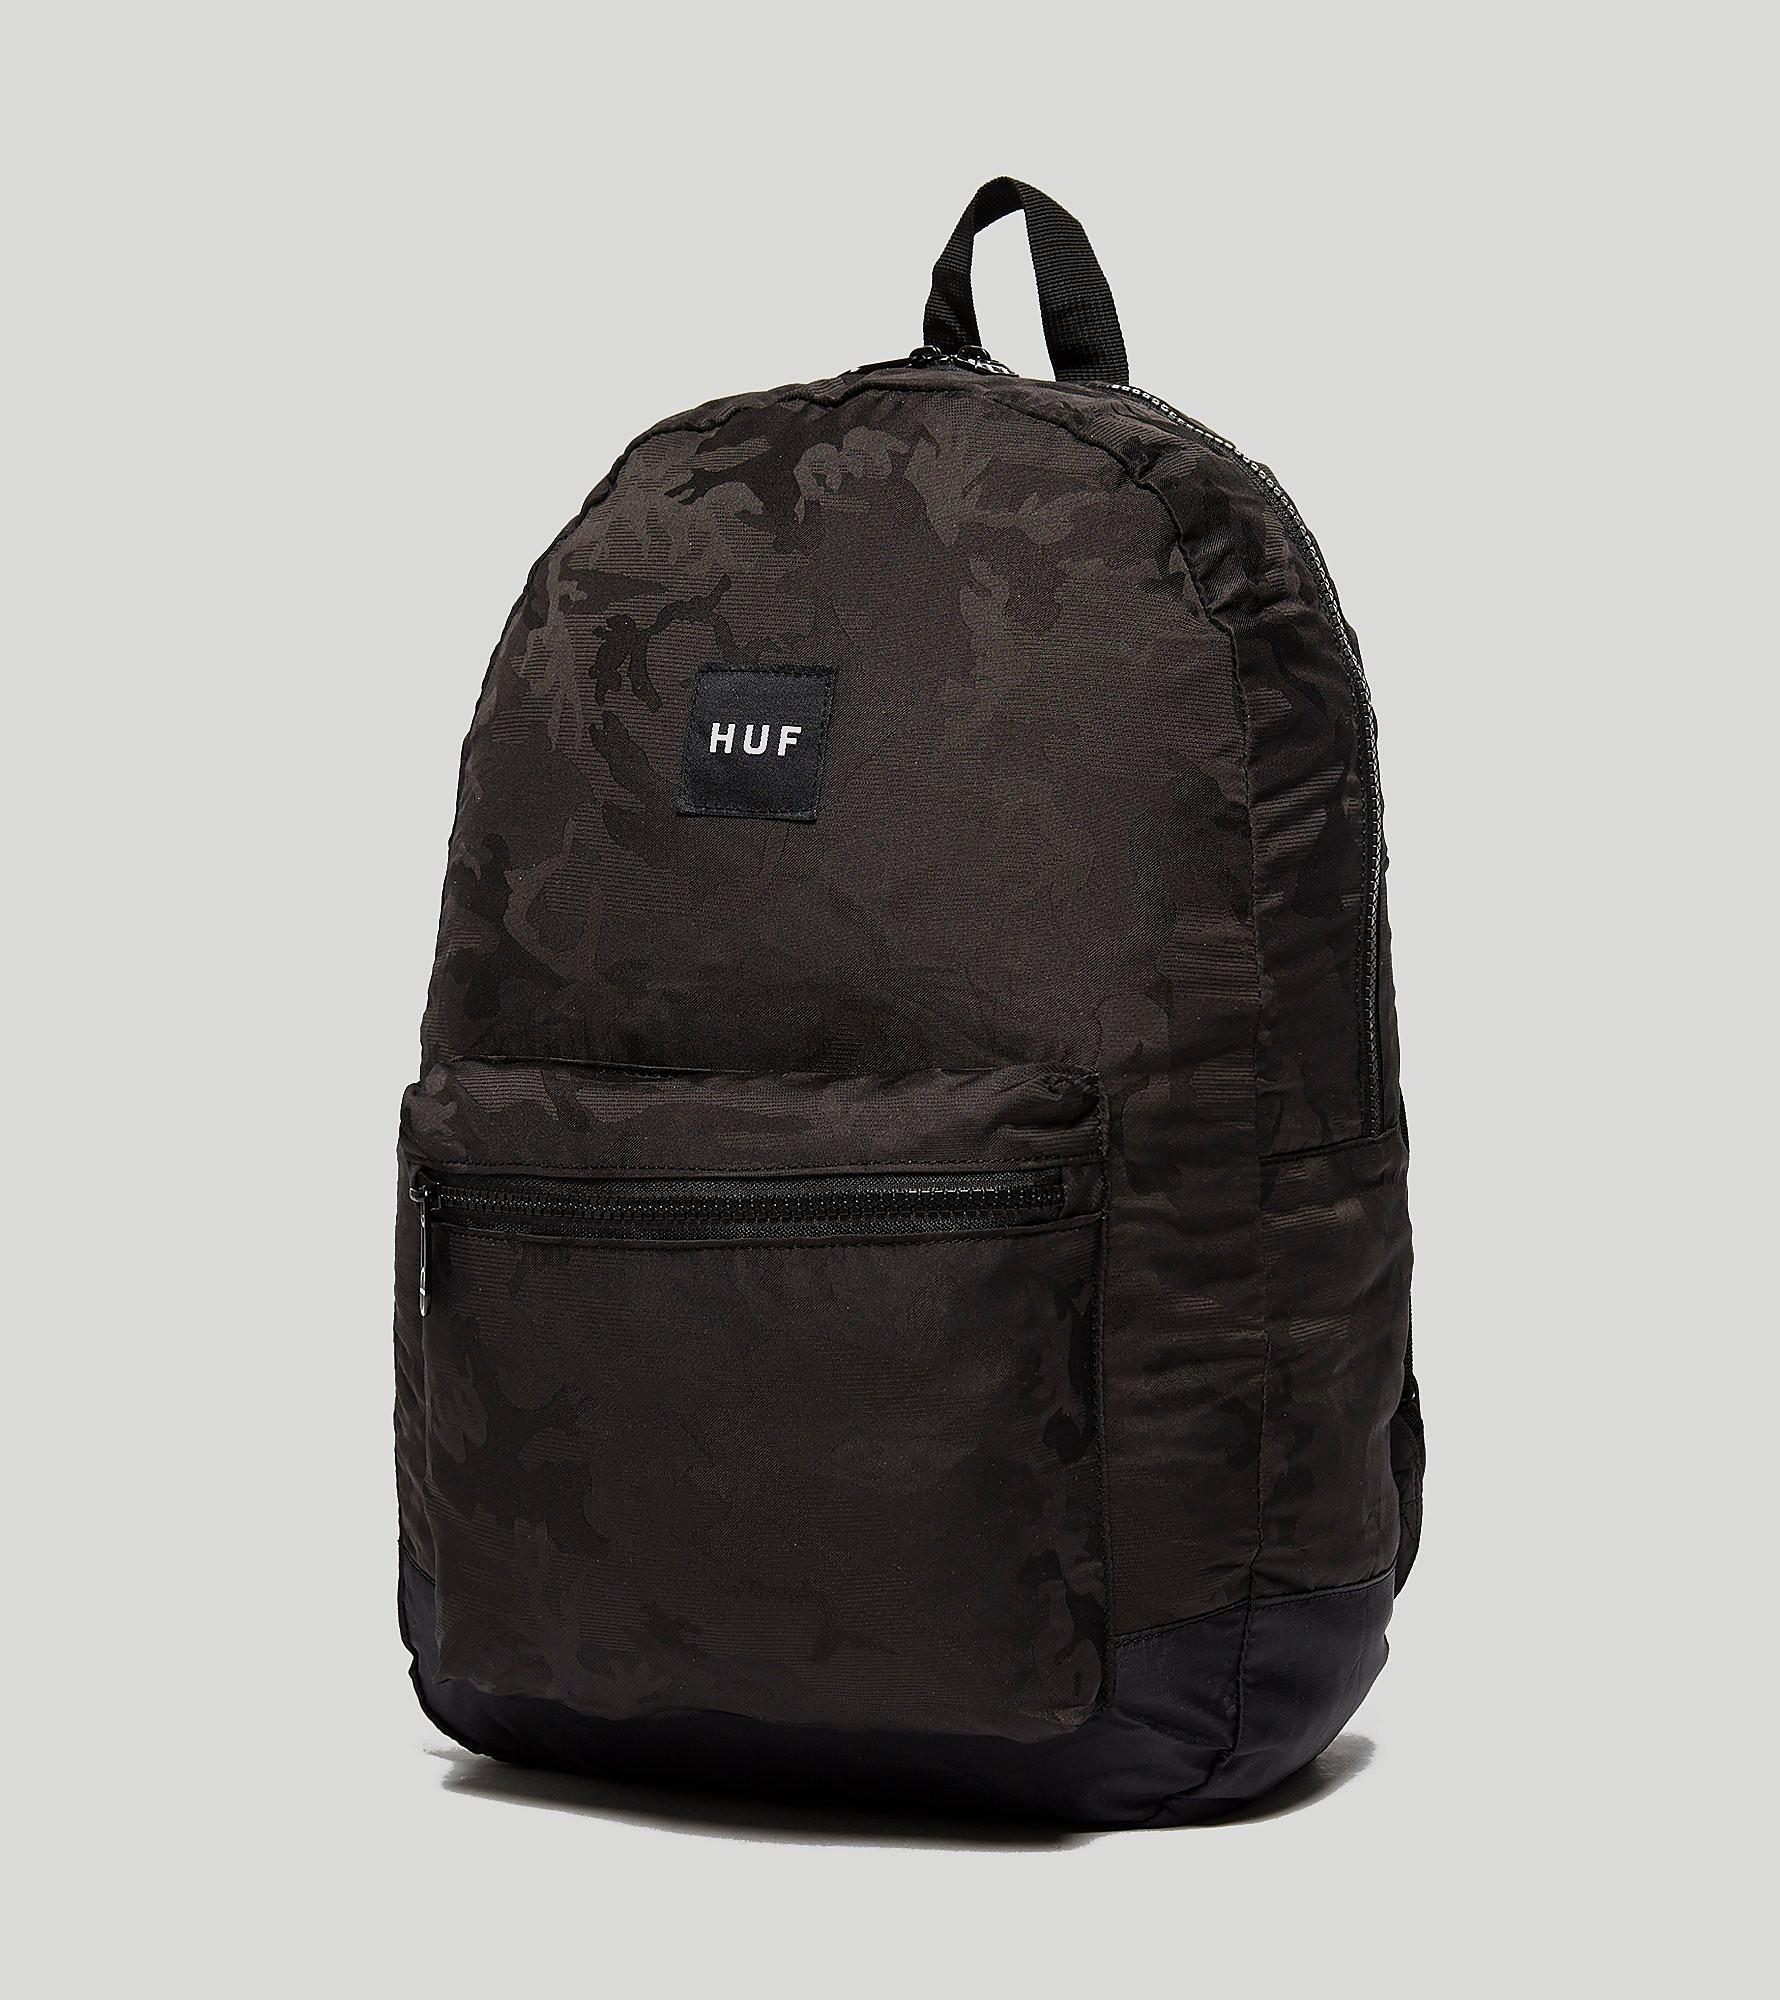 HUF Packable Backpack